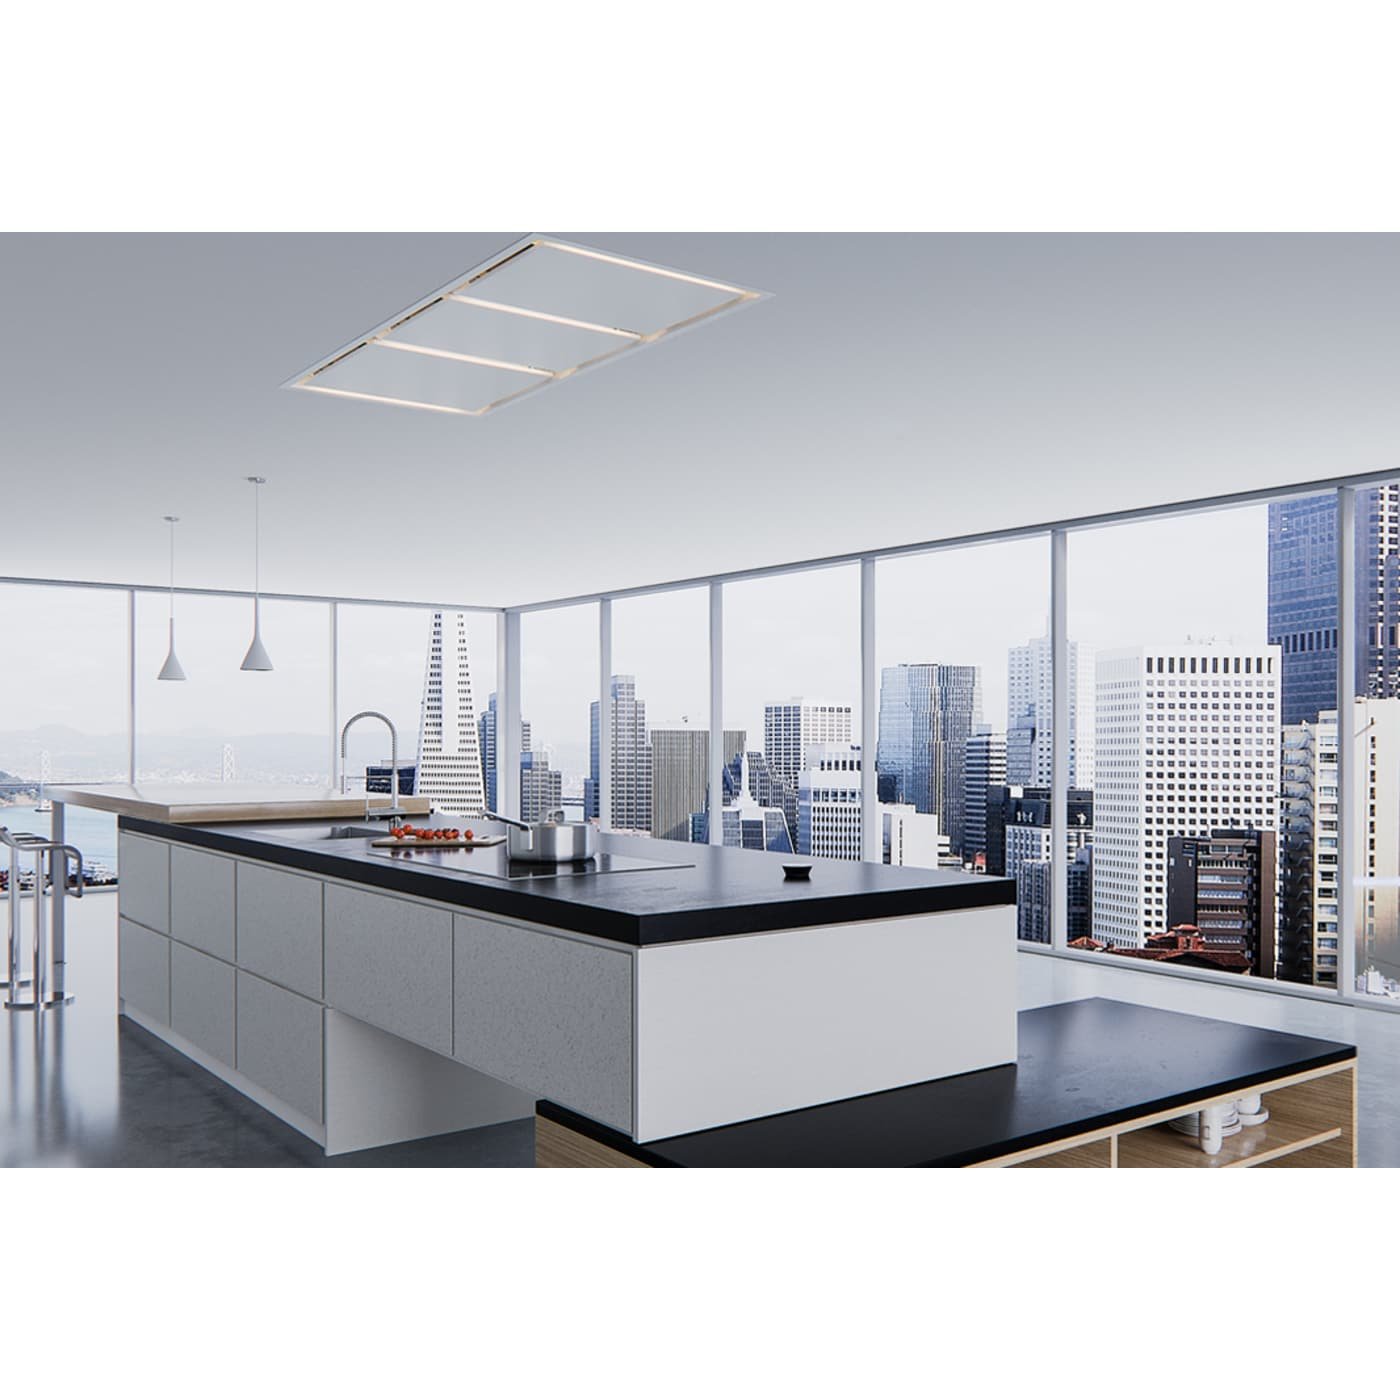 range vent amazing com under of gallery best ventilation ideas insert design decor pack unique power hood superior amazon zephyr hoods home picture silver broan new kitchen cabinet inserts style